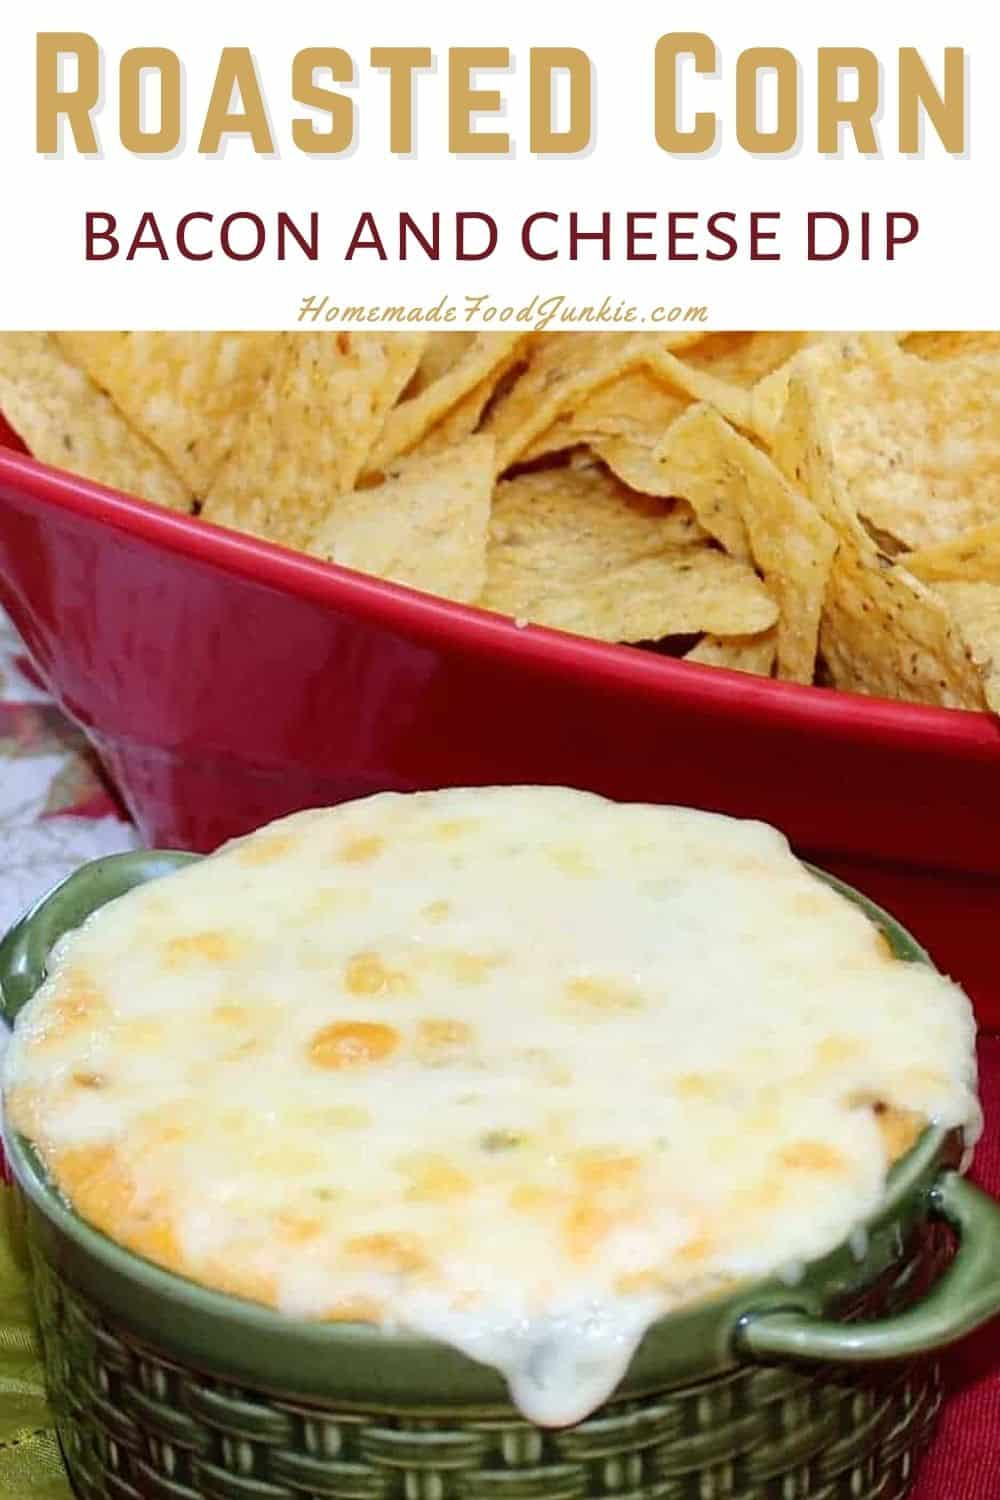 Roasted corn bacon and cheese dip-pin image